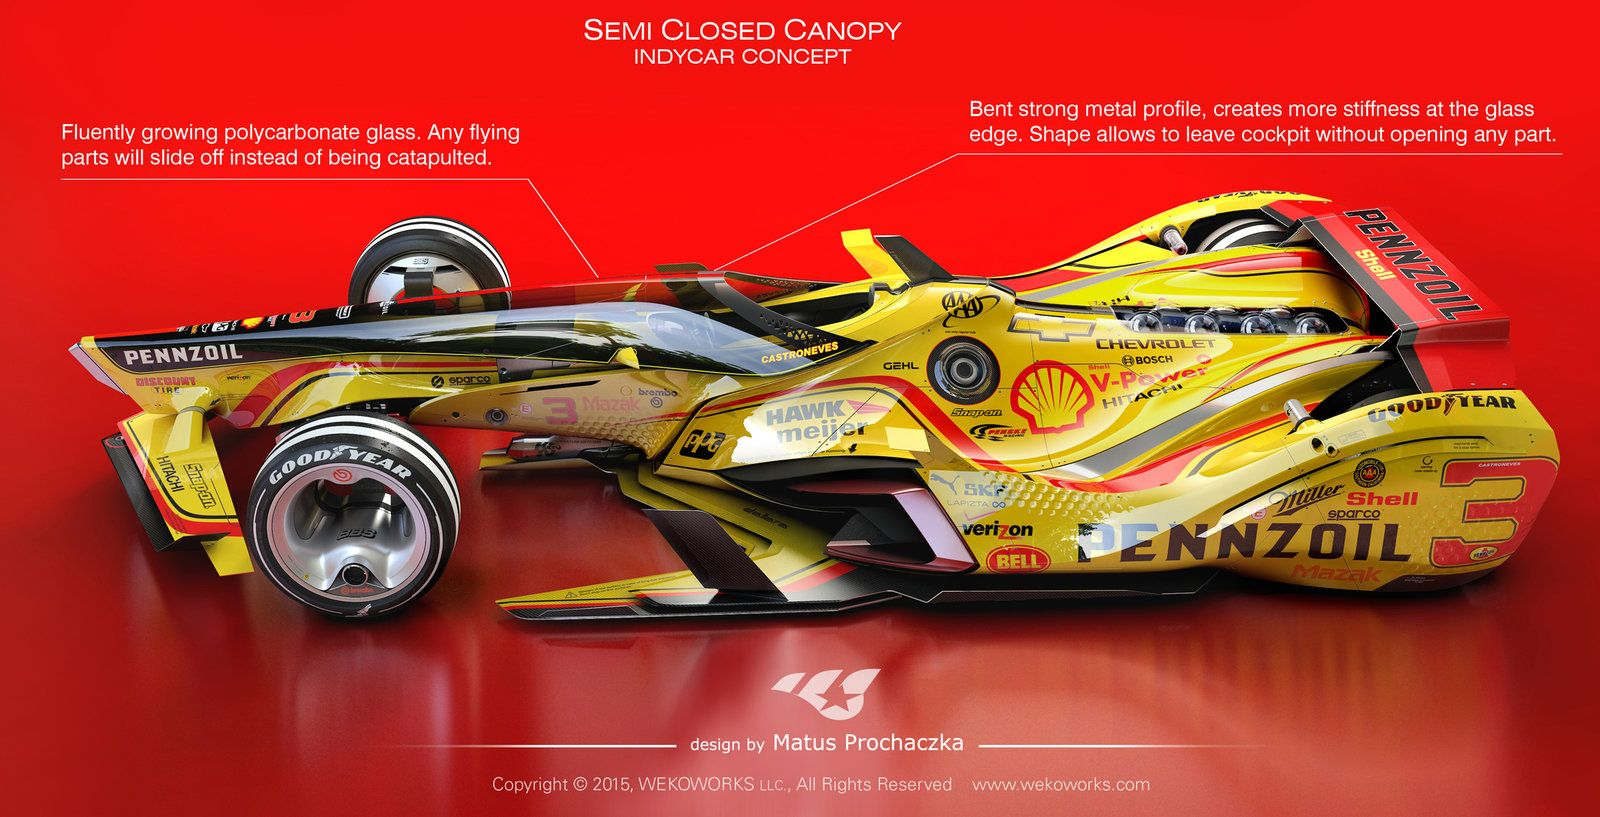 Pin By Ryan Sharp On Art And Design Indy Cars Super Sport Cars